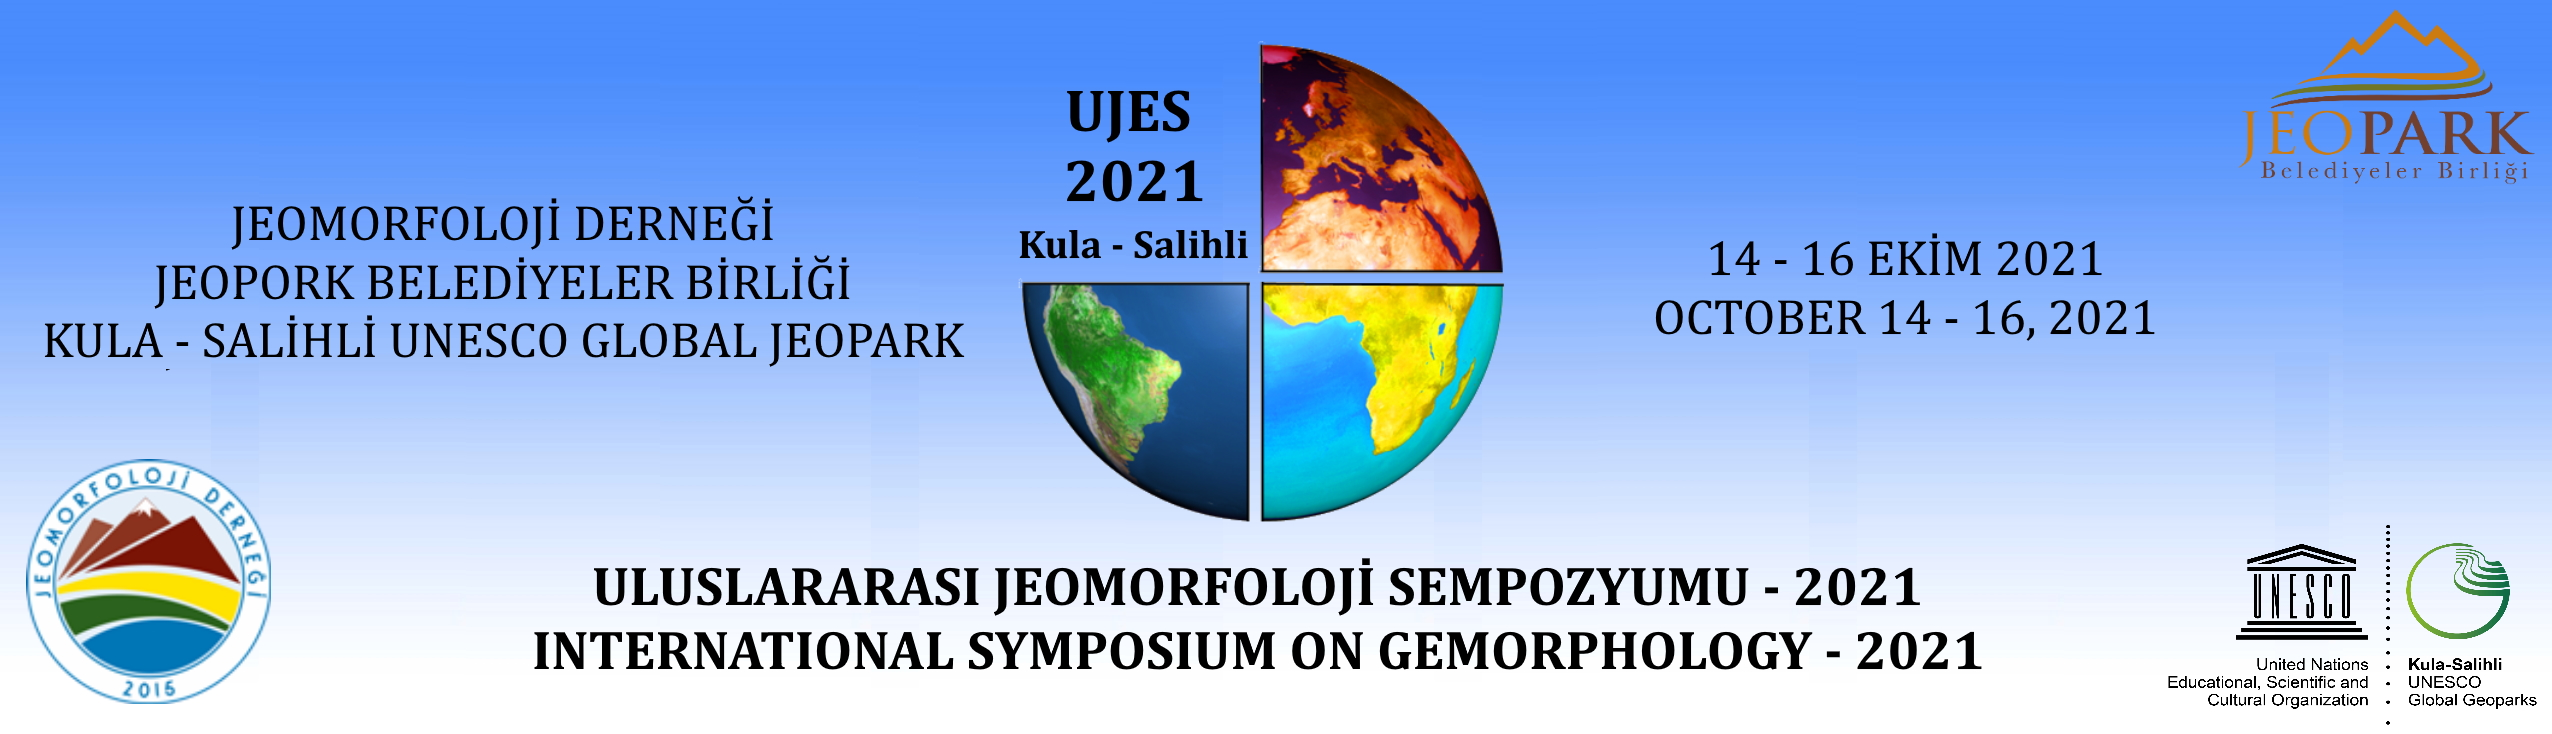 UJES 2021